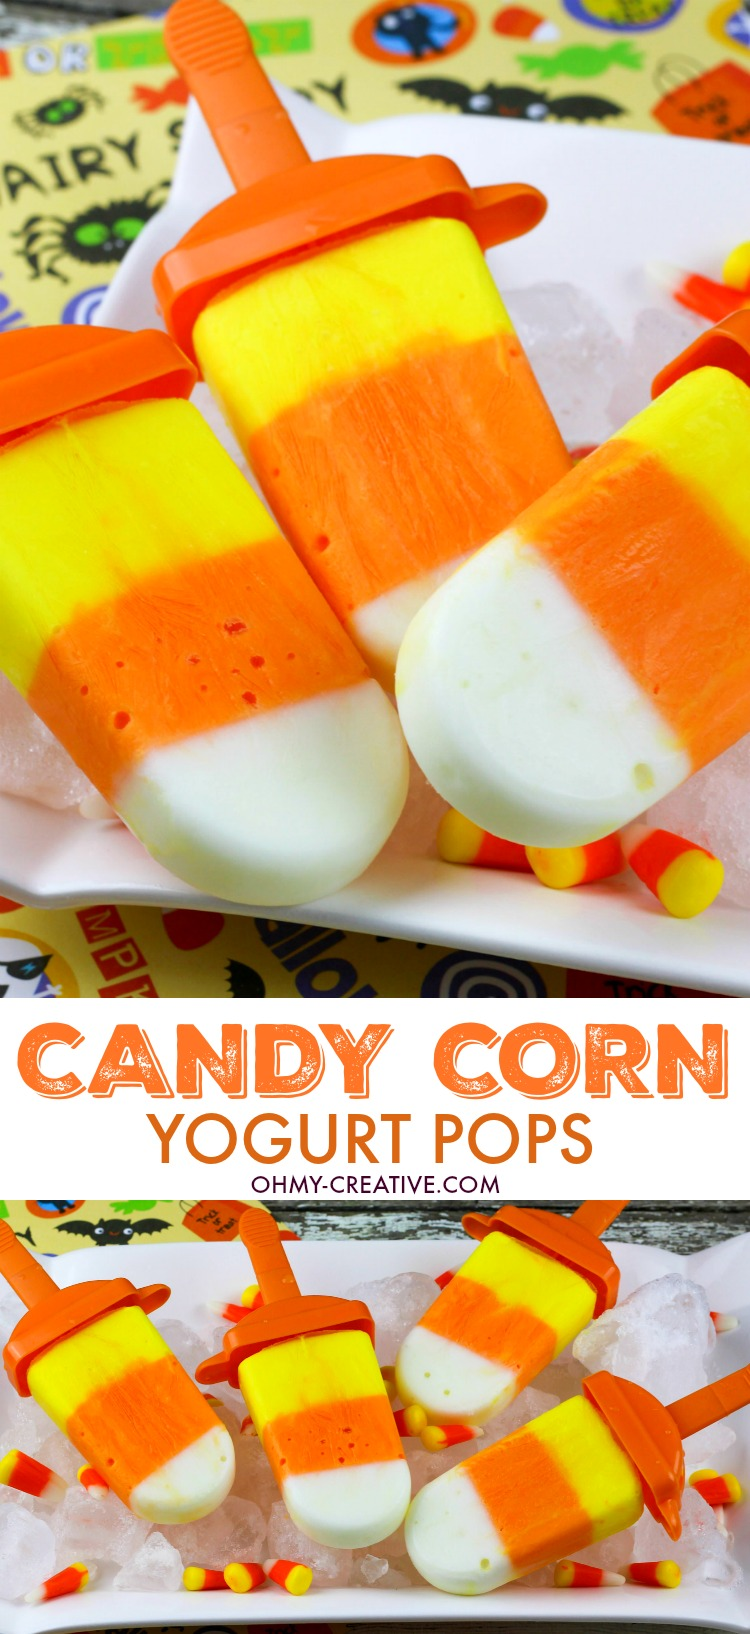 Yogurt Candy Corn Popsicle! Yellow, orange and white popsicles |  OHMY-CREATIVE.COM | Candy Corn Dessert Recipes | recipes using candy corn | Homemade candy corn | Halloween Treat | Halloween Dessert |  Ideas for candy corn